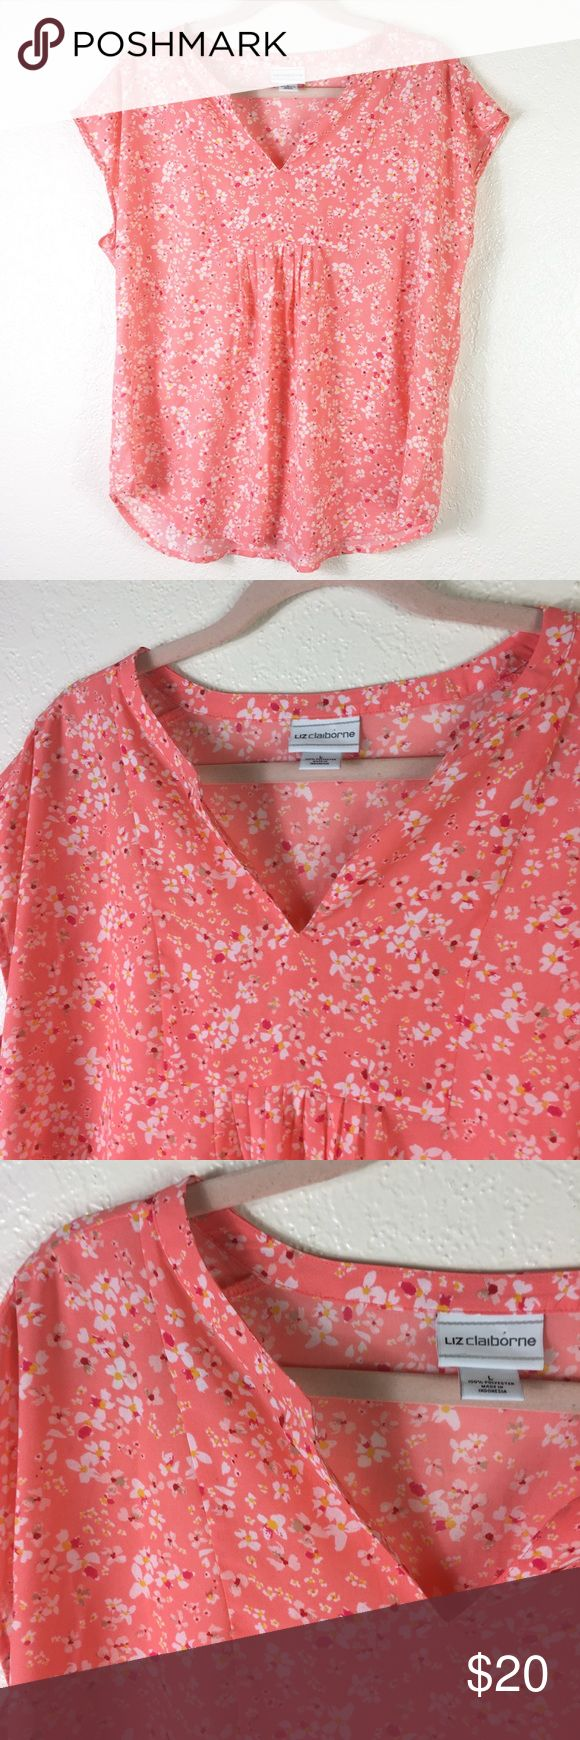 [Liz Claiborne] Floral smock top Flower print top. No Trades! Offers Welcome Liz Claiborne Tops Blouses